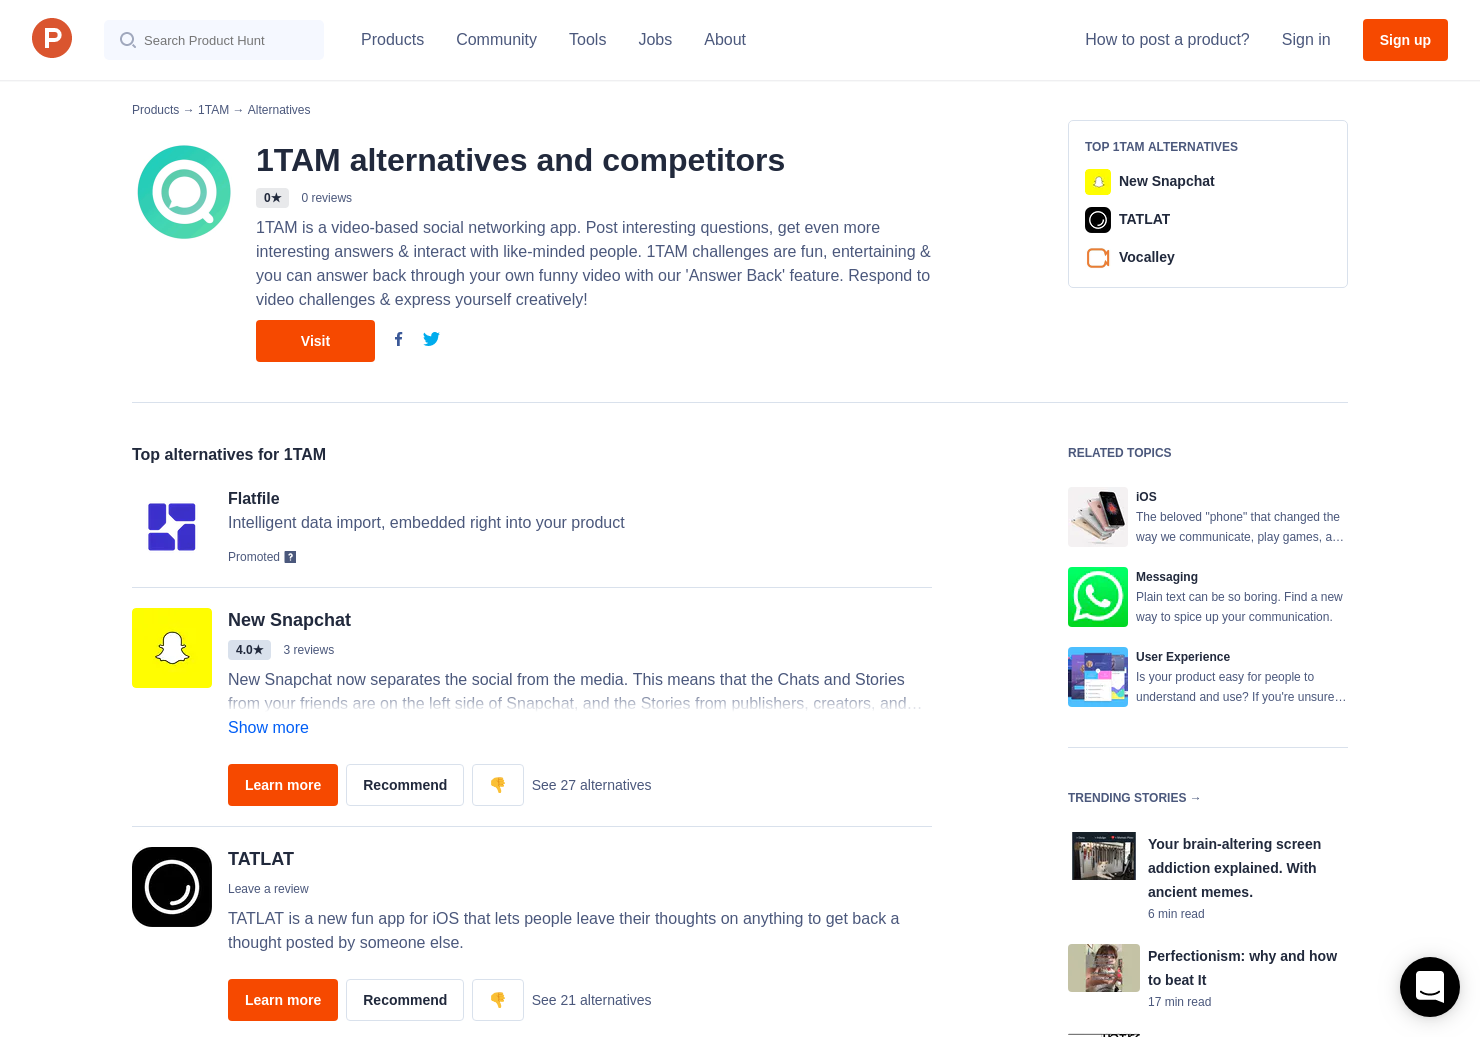 6 Alternatives to 1TAM for iPhone | Product Hunt